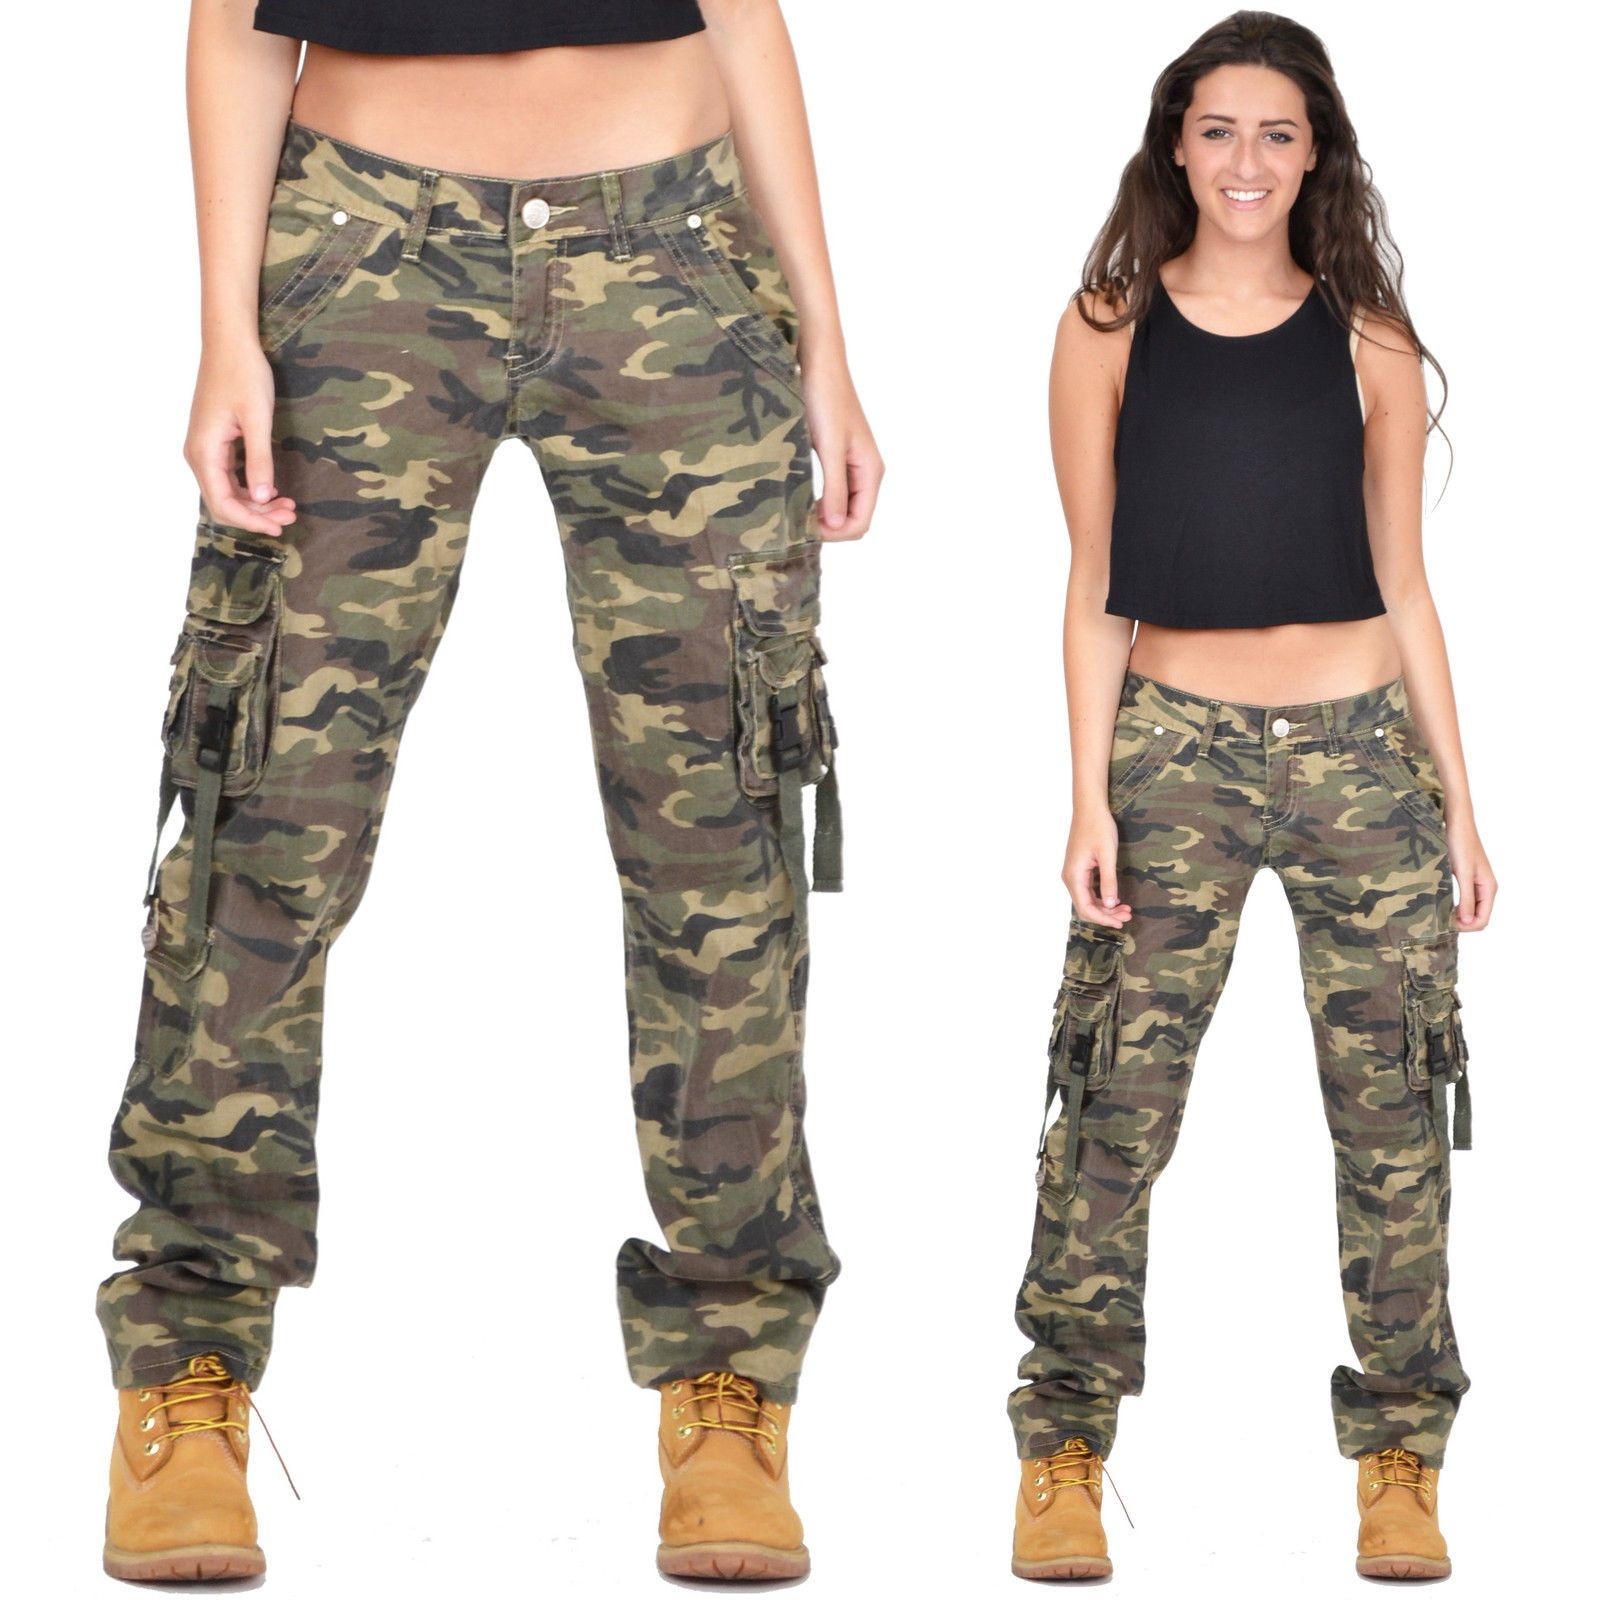 552afded9e Ladies Womens Army Military Green Camouflage Cargo Pants Jeans Combat  Trousers